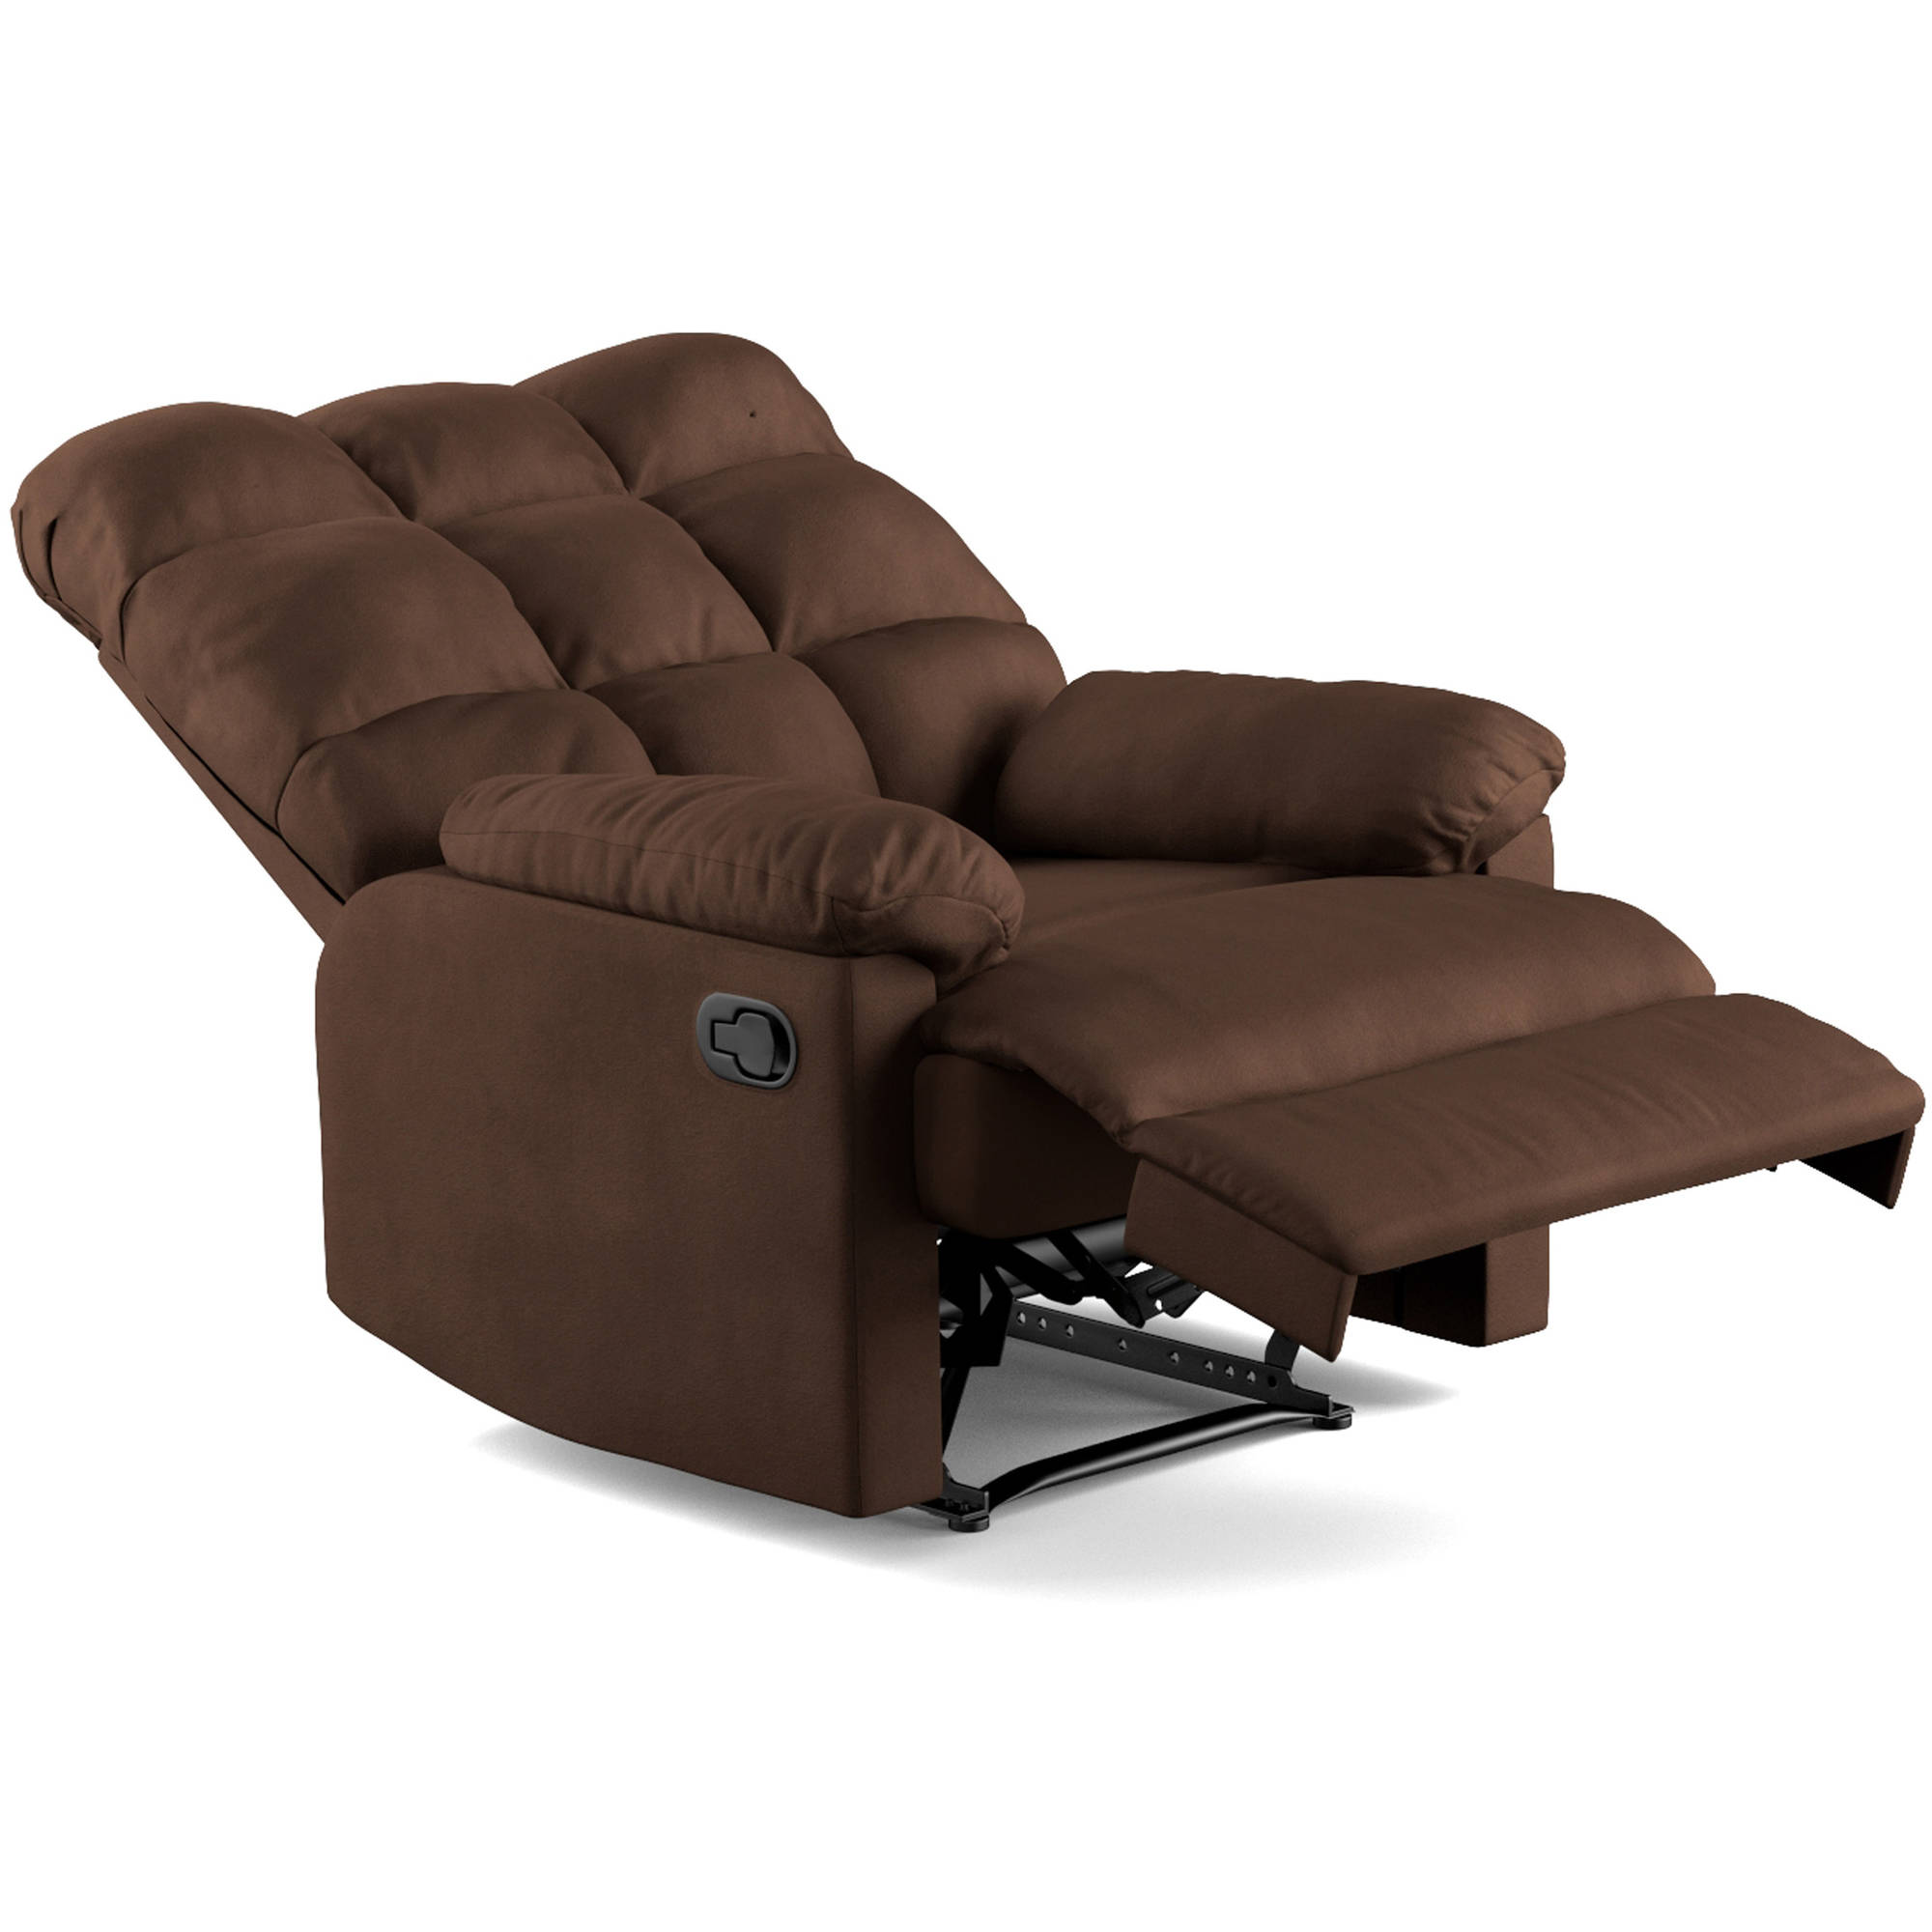 Mainstays Baja Wall Hugger Microfiber Biscuit back Recliner Chair Multiple Colors - Walmart.com  sc 1 st  Walmart : new style super comfort recliner - islam-shia.org